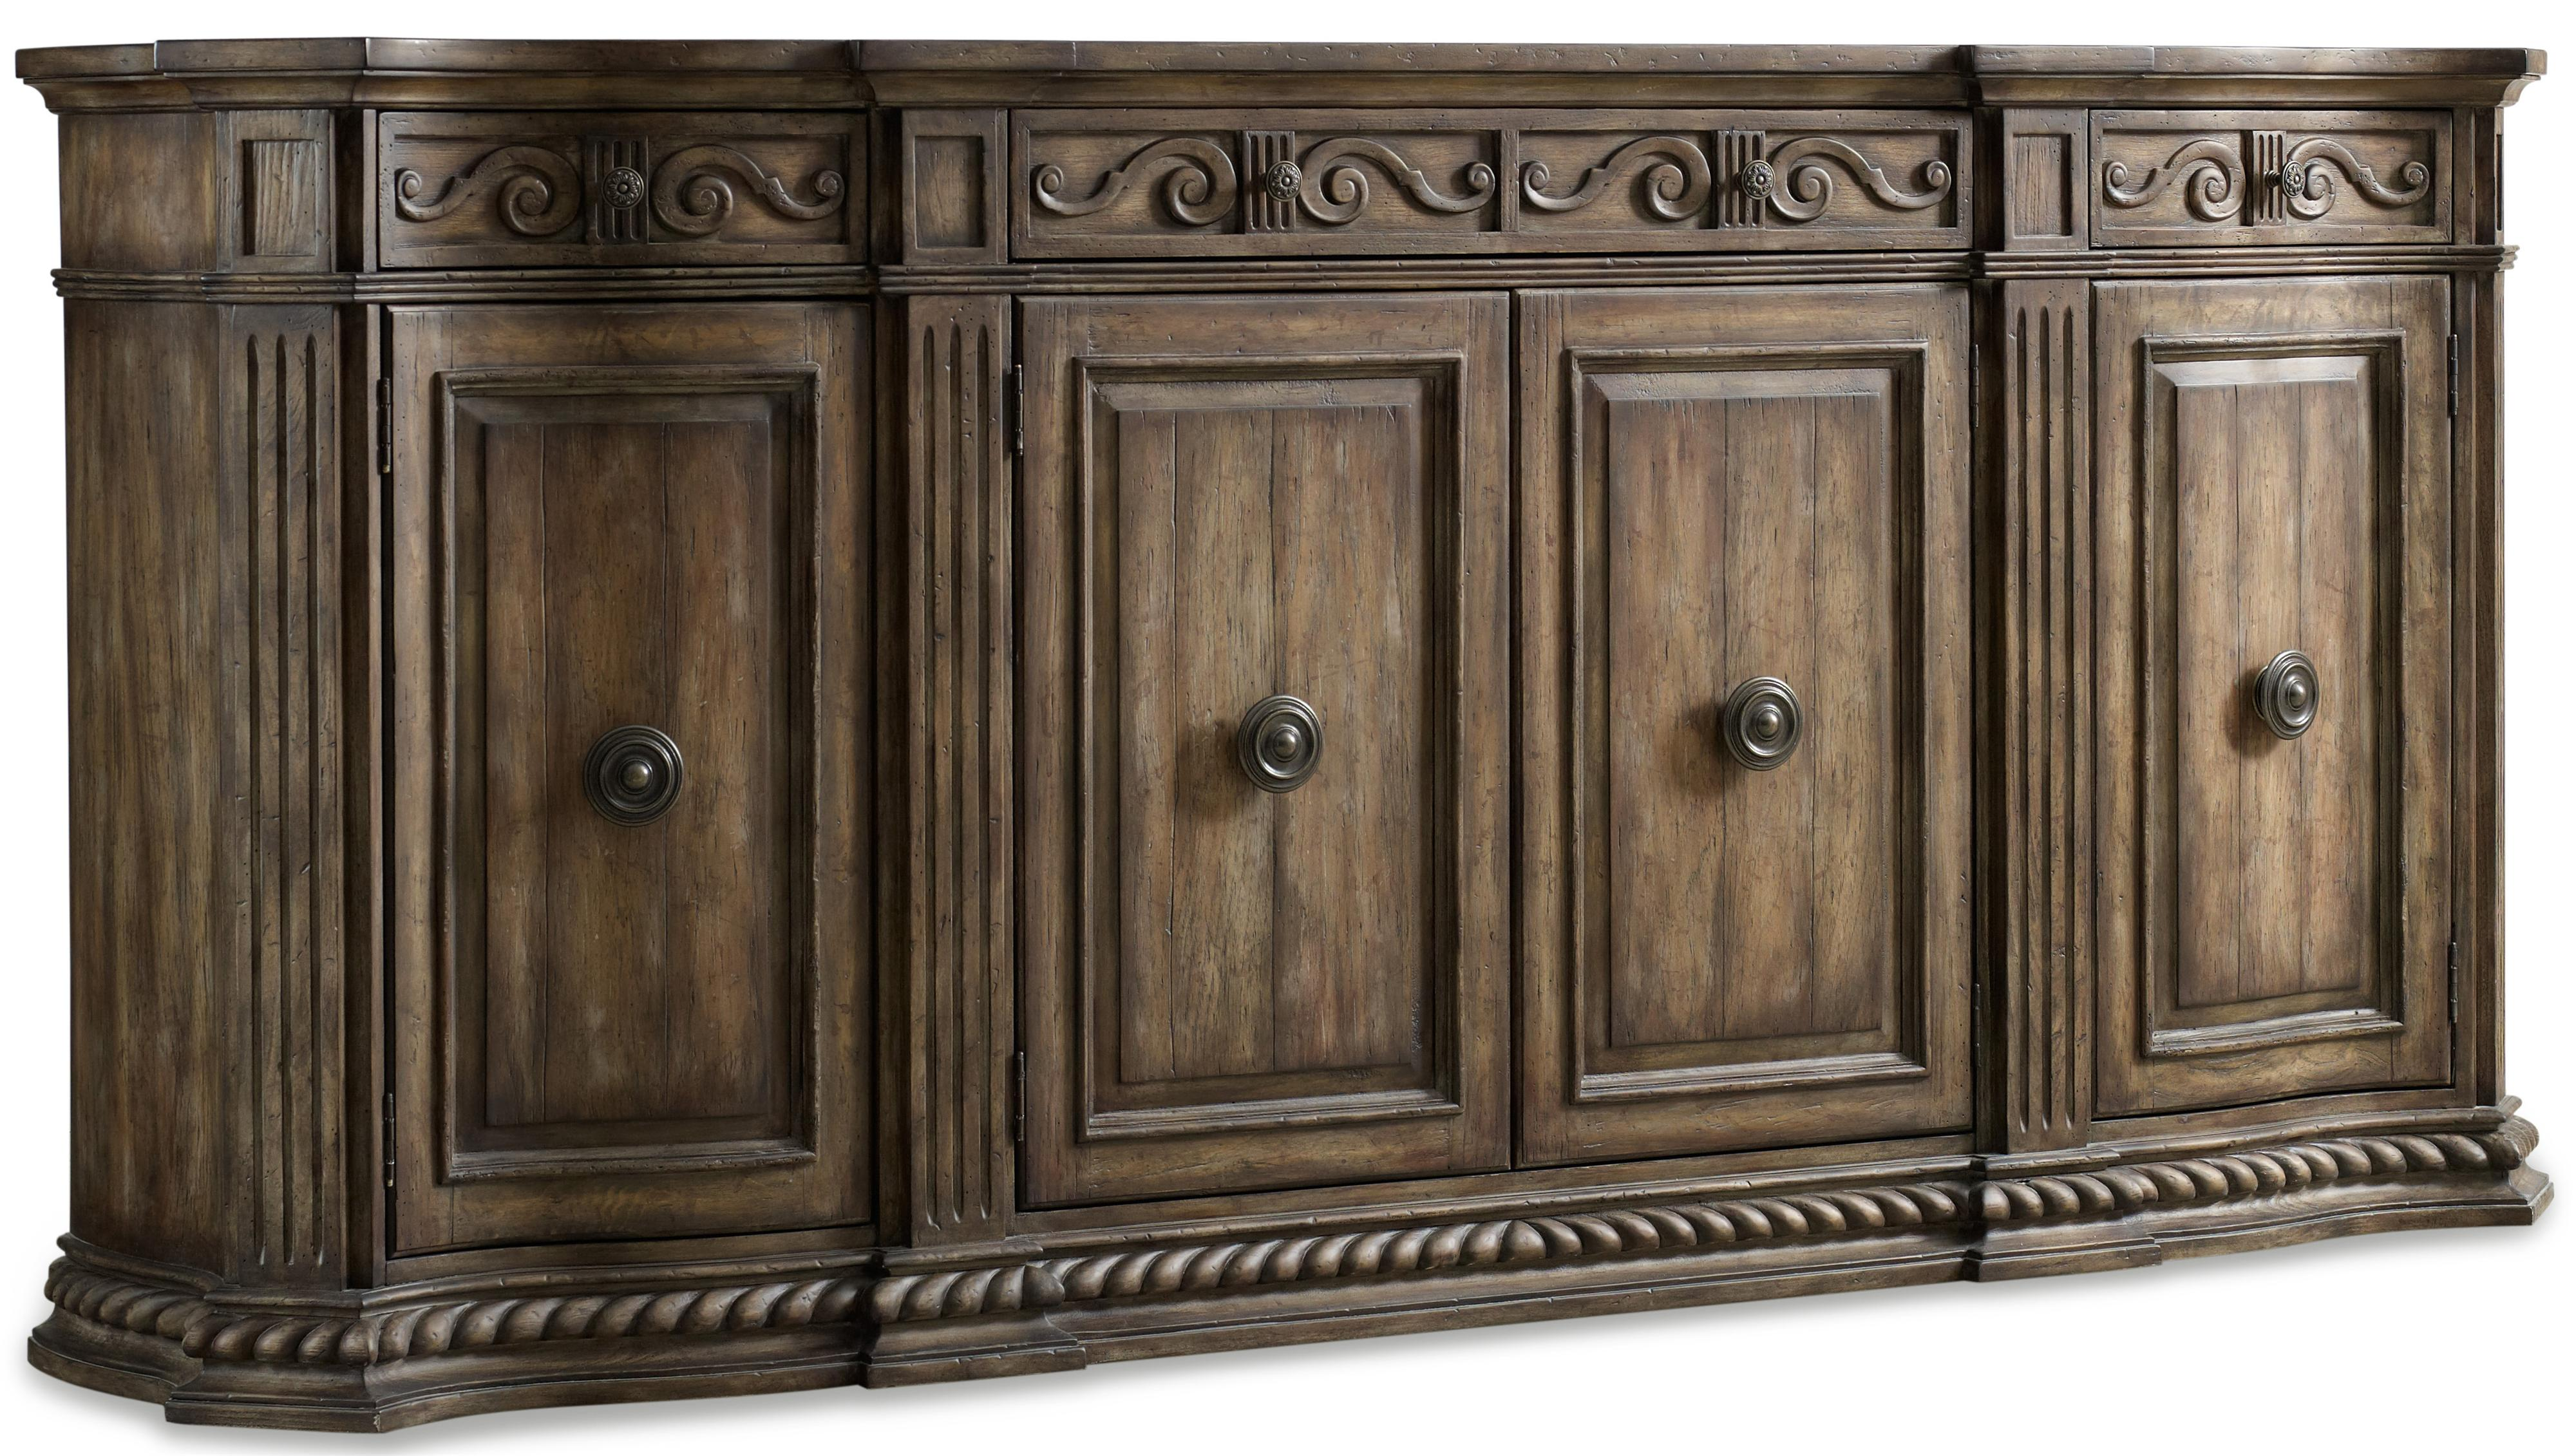 Hooker Furniture Rhapsody 96-Inch Credenza - Item Number: 5070-85002